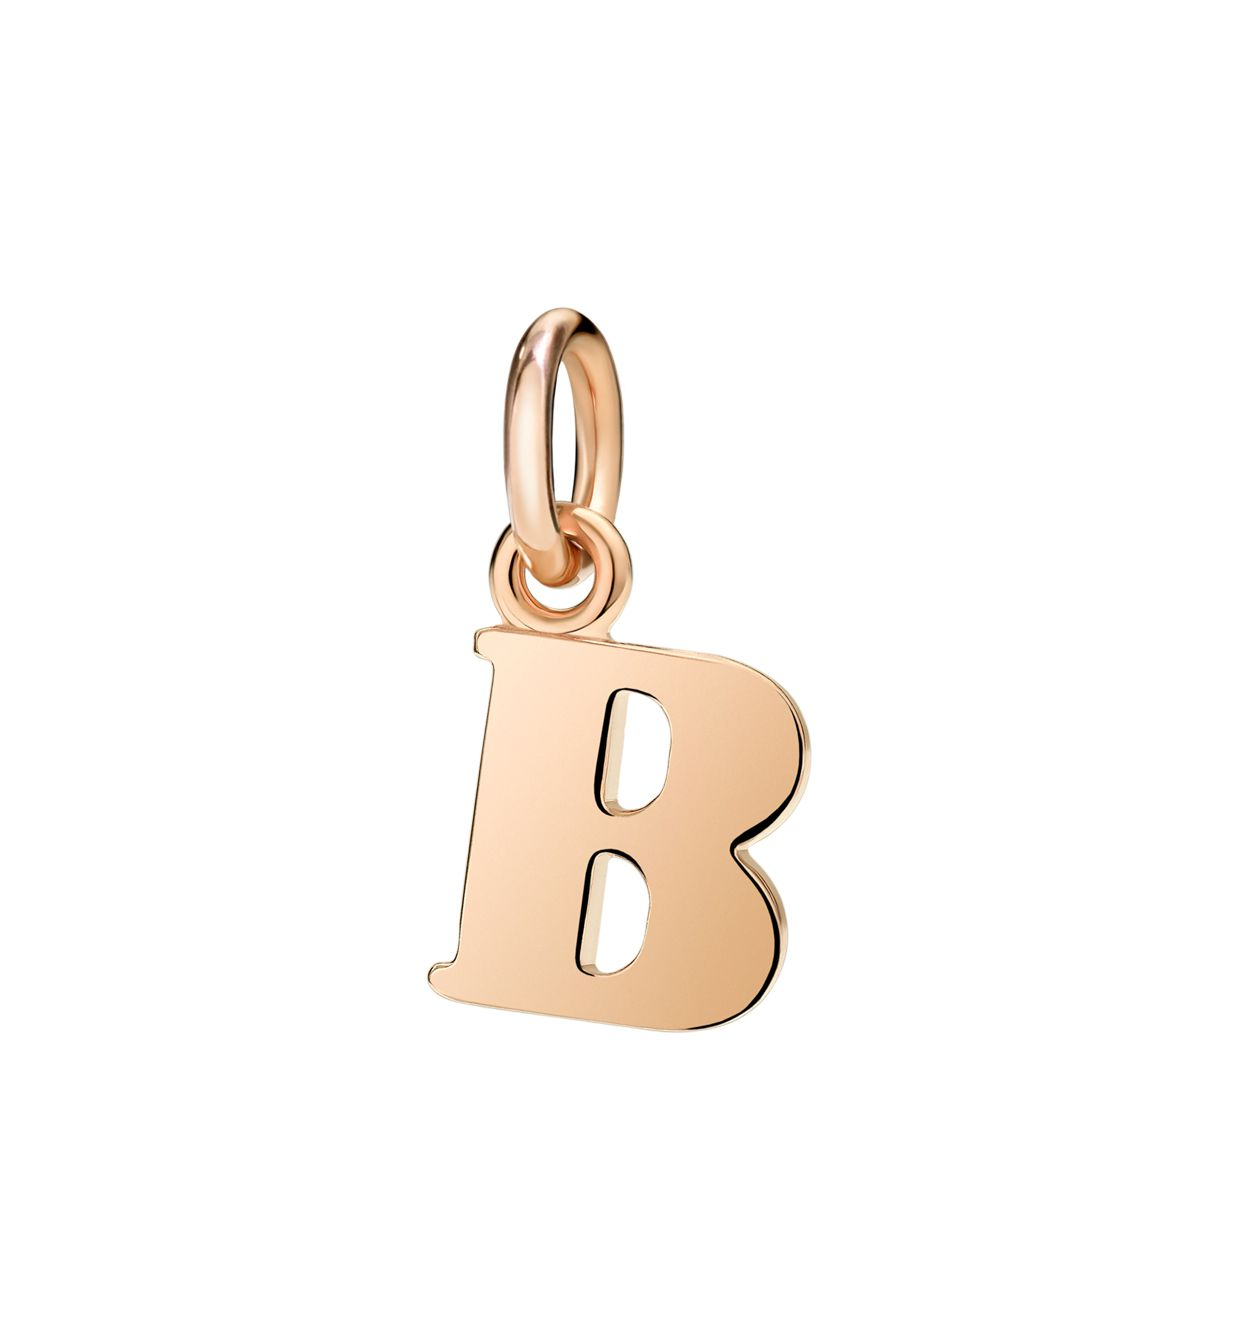 DoDo Letter B in 9k Rose Gold - Orsini Jewellers NZ